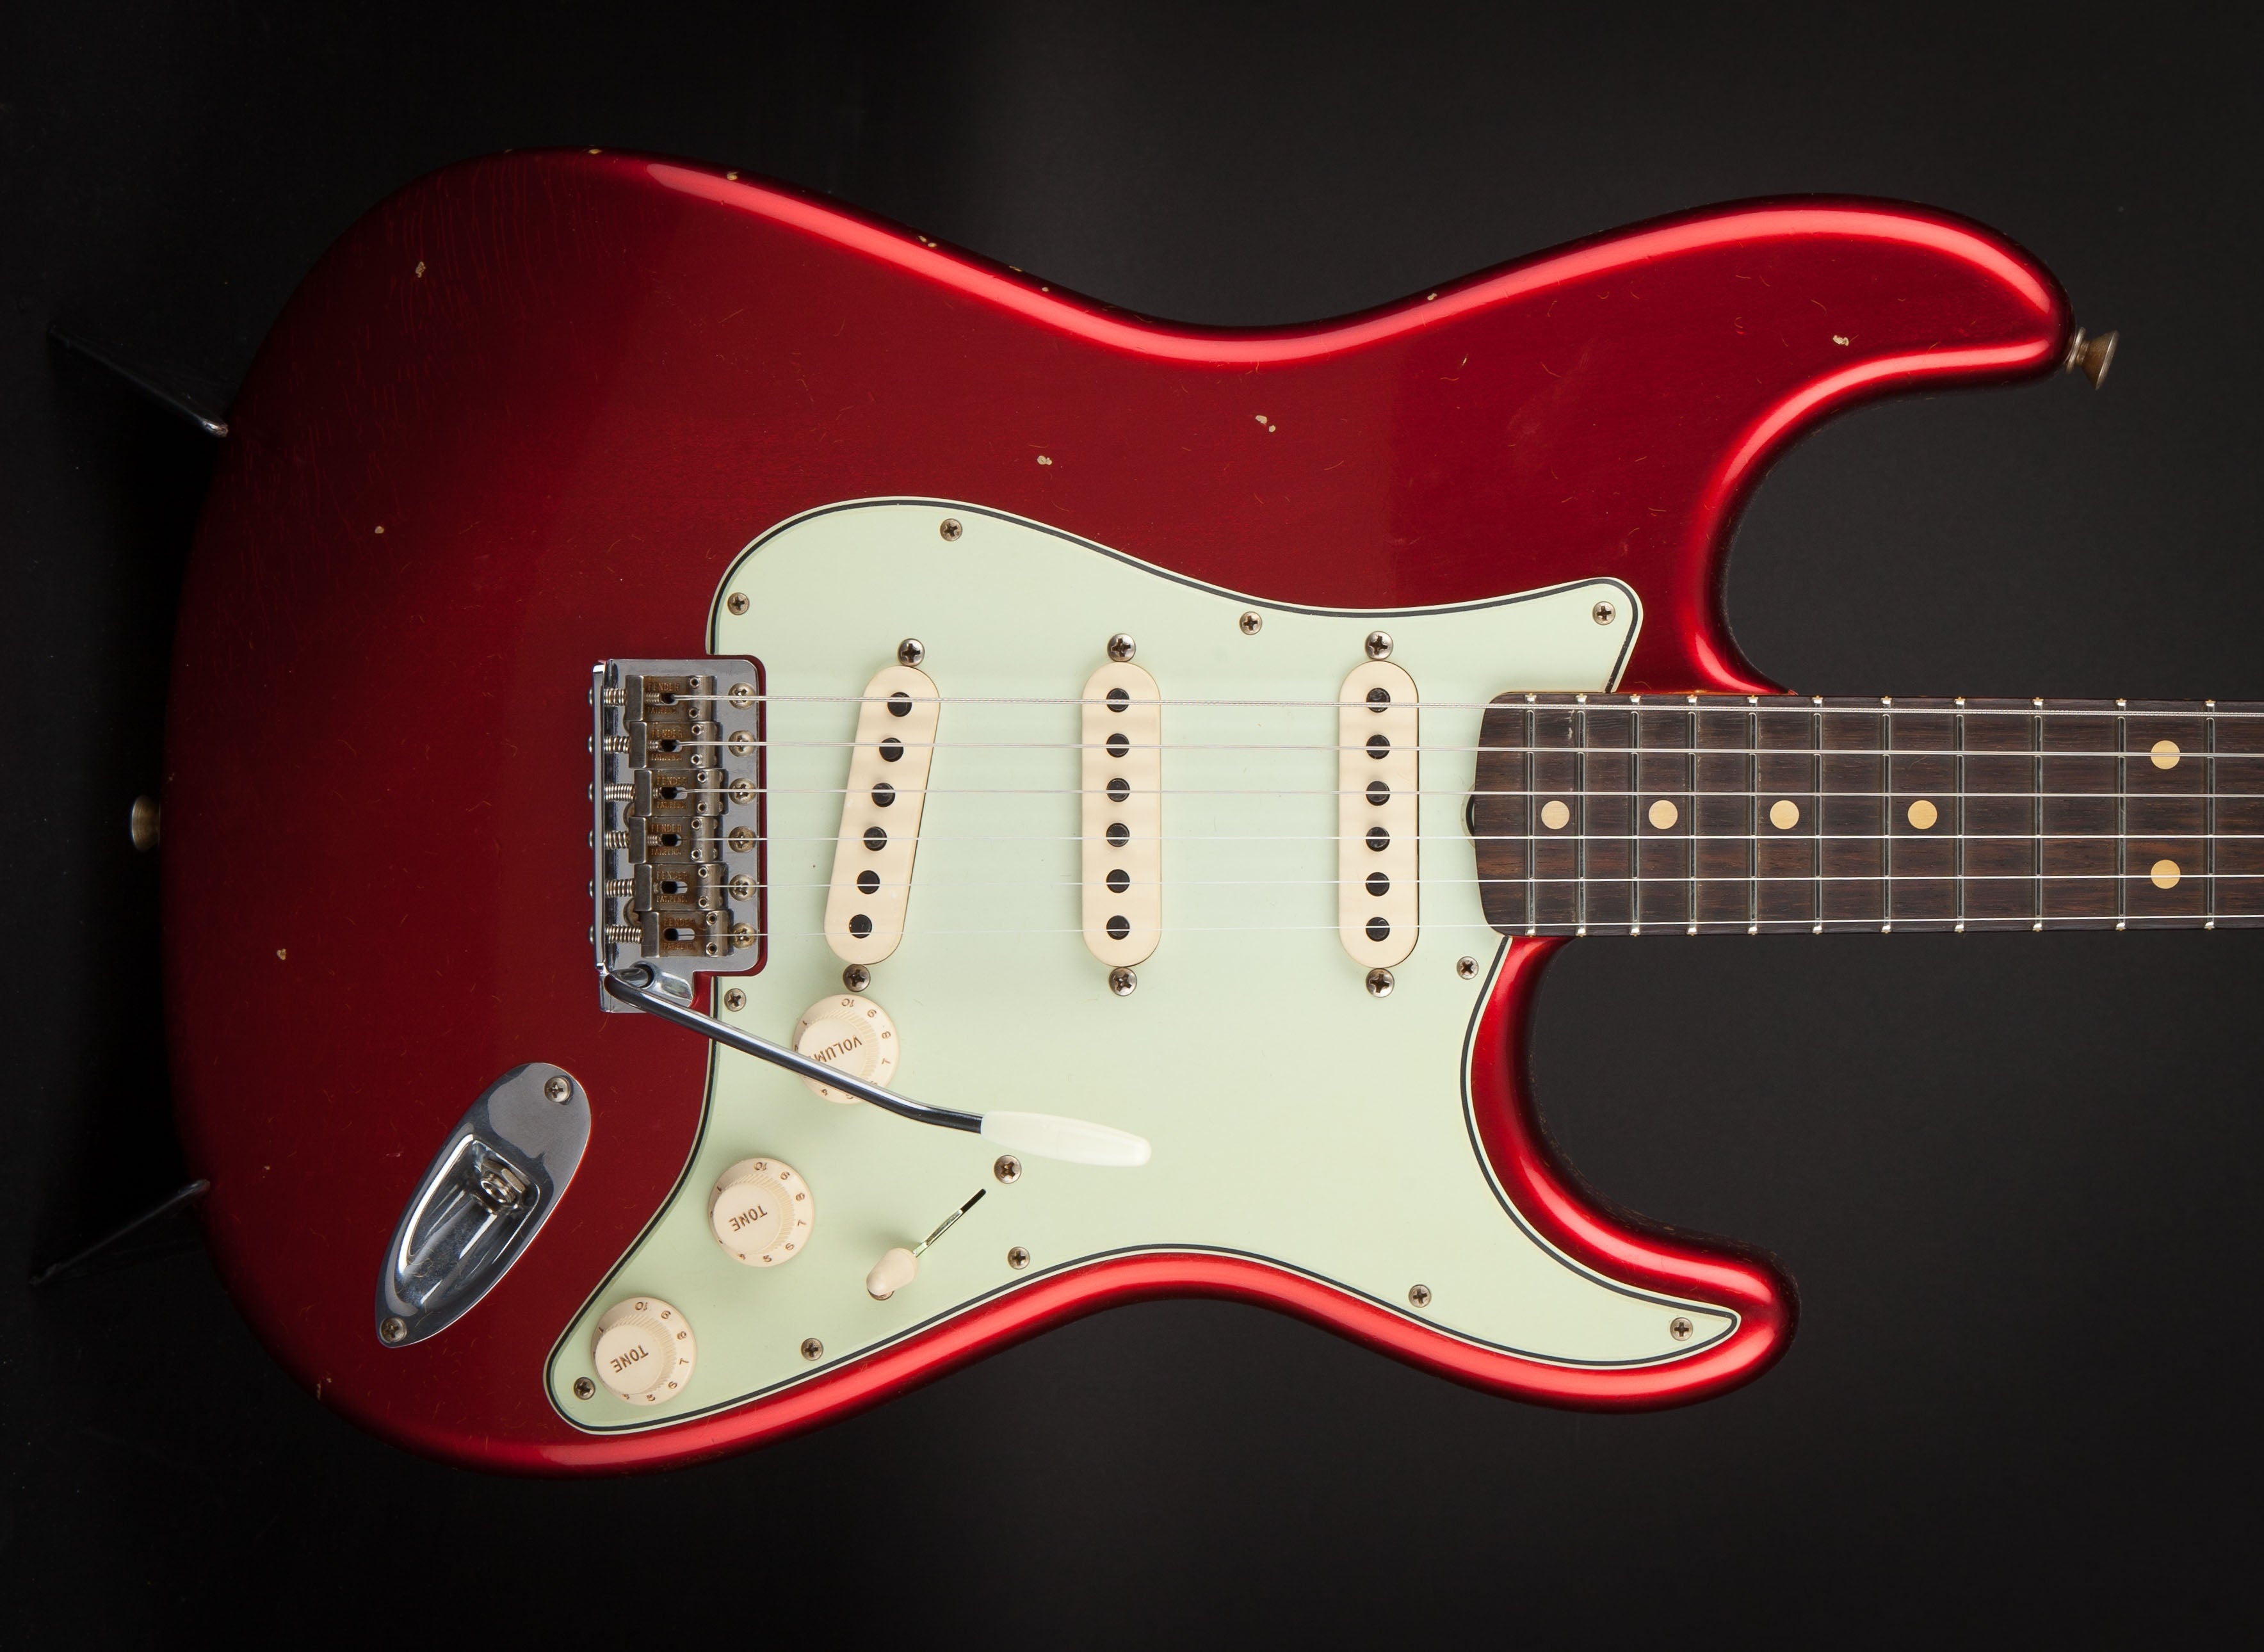 Fender Custom Shop:60 Stratocaster Candy Apple Red #R98596